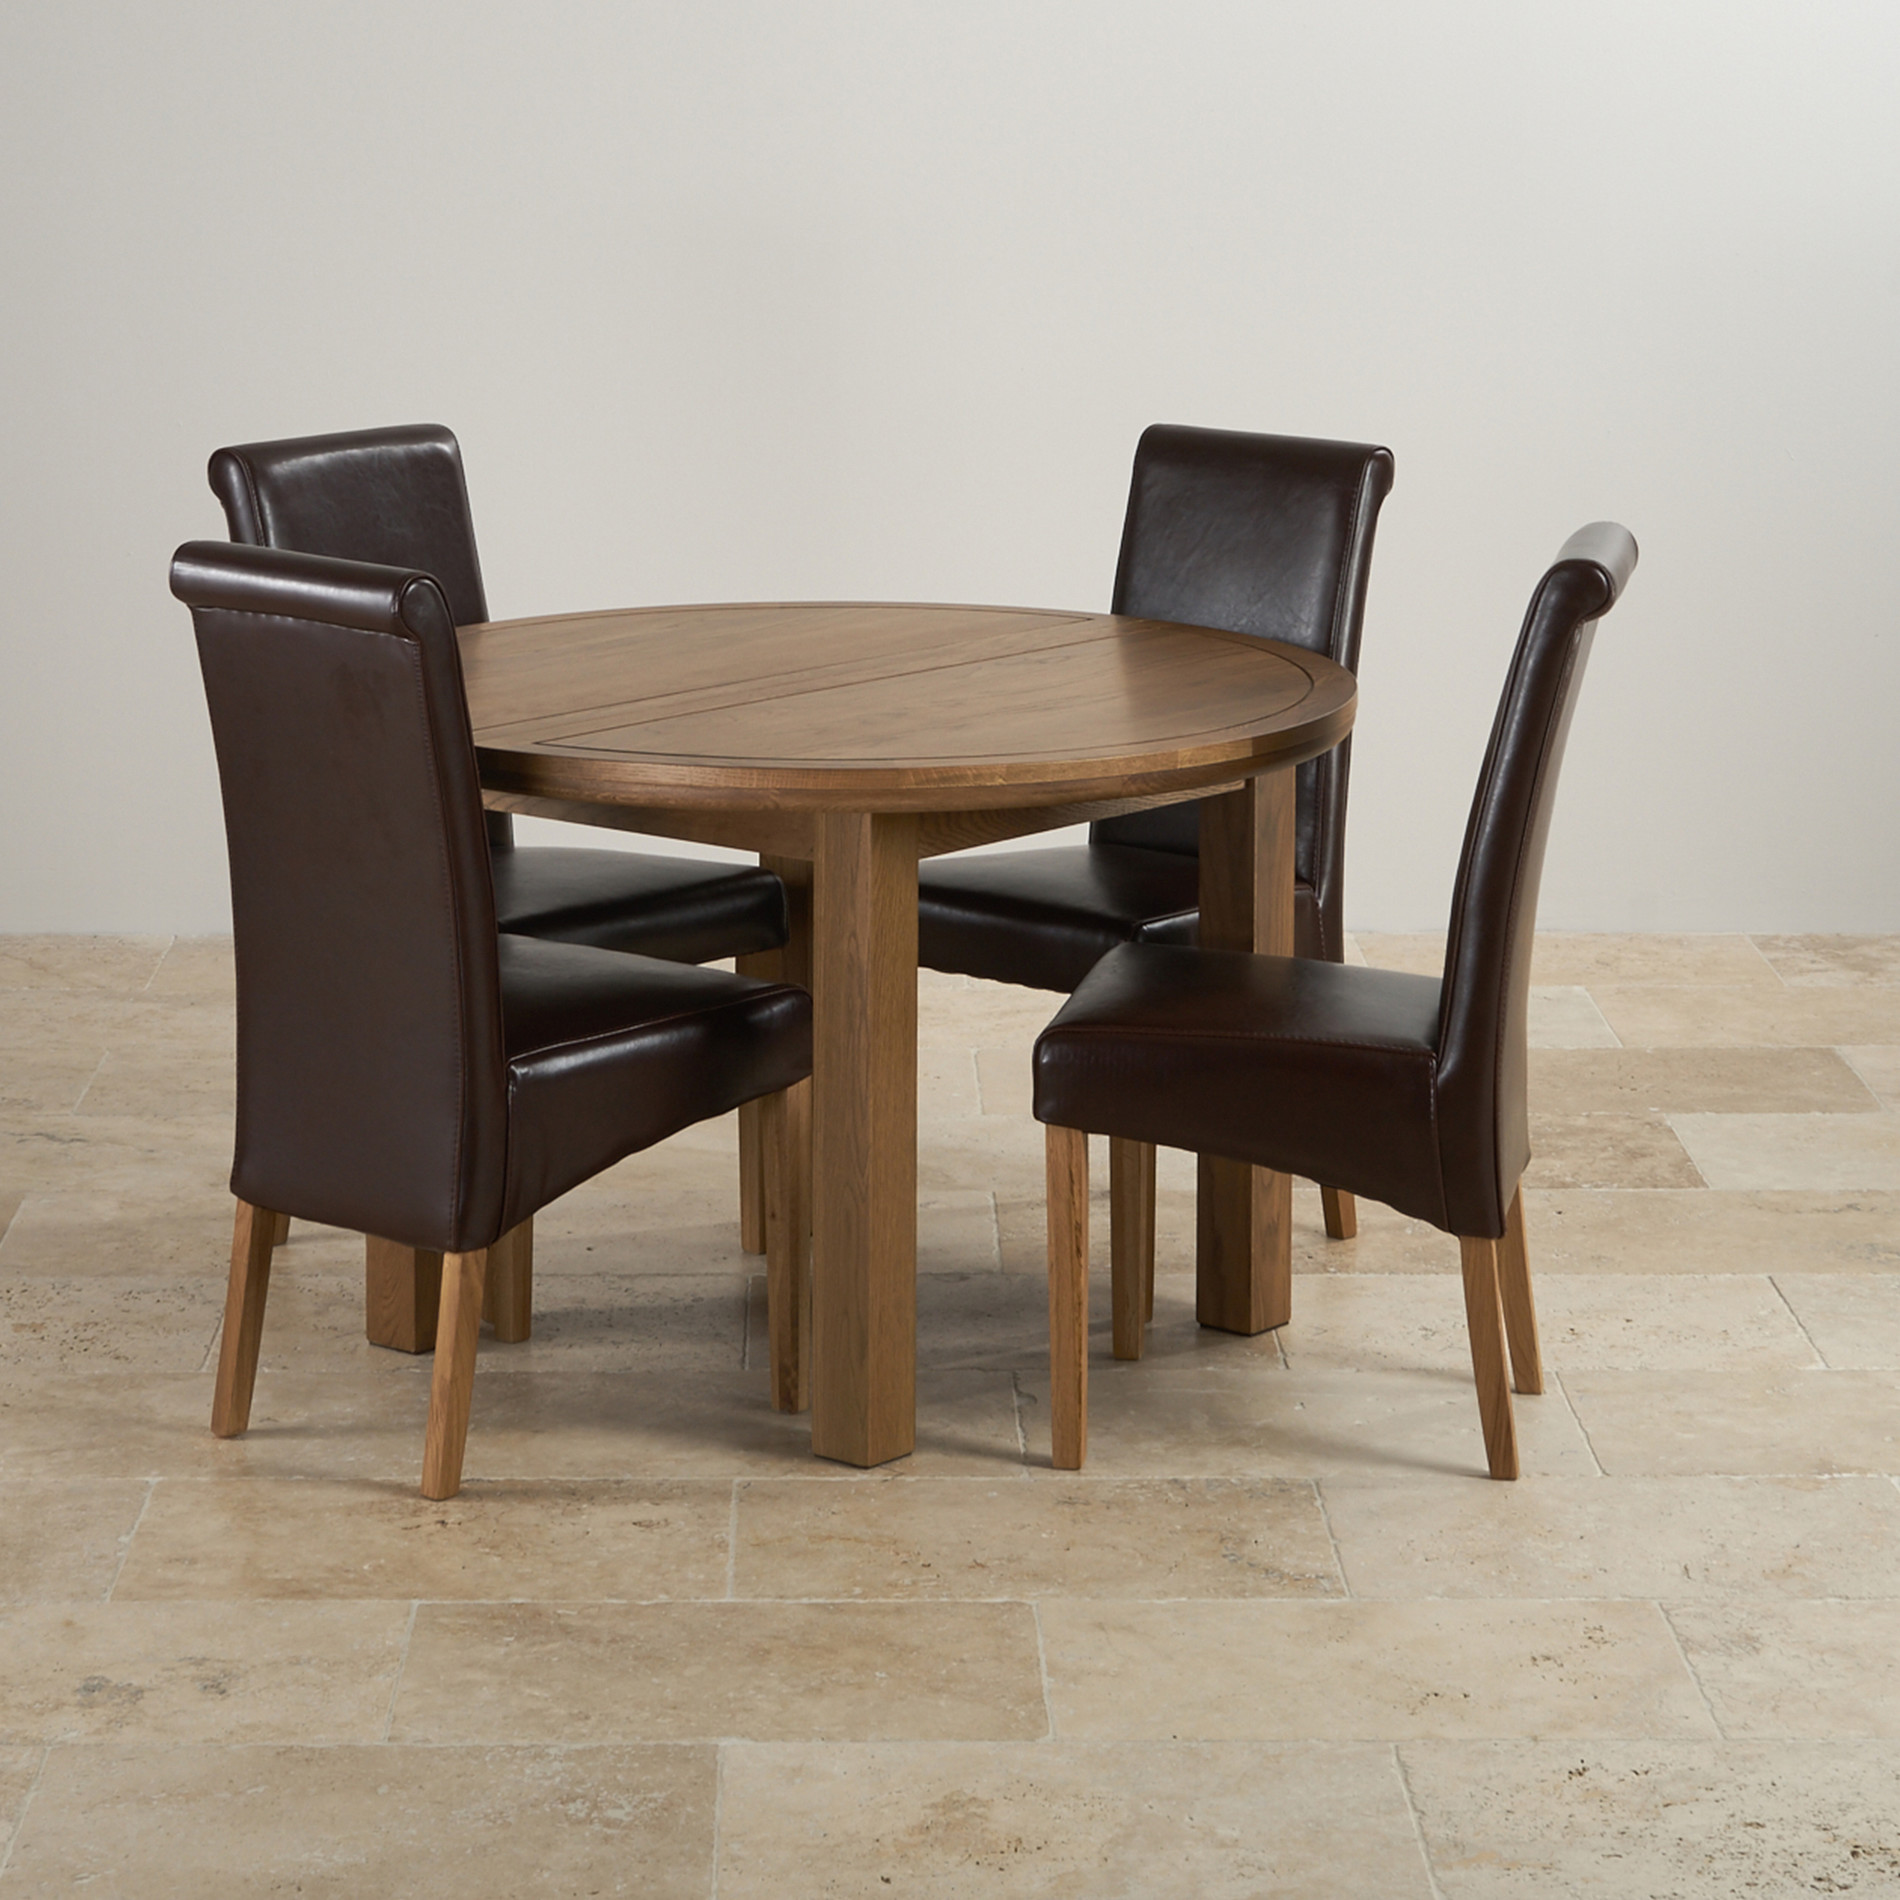 Dining Set Round Table: Knightsbridge Round Extending Dining Set: Dining Table + 4